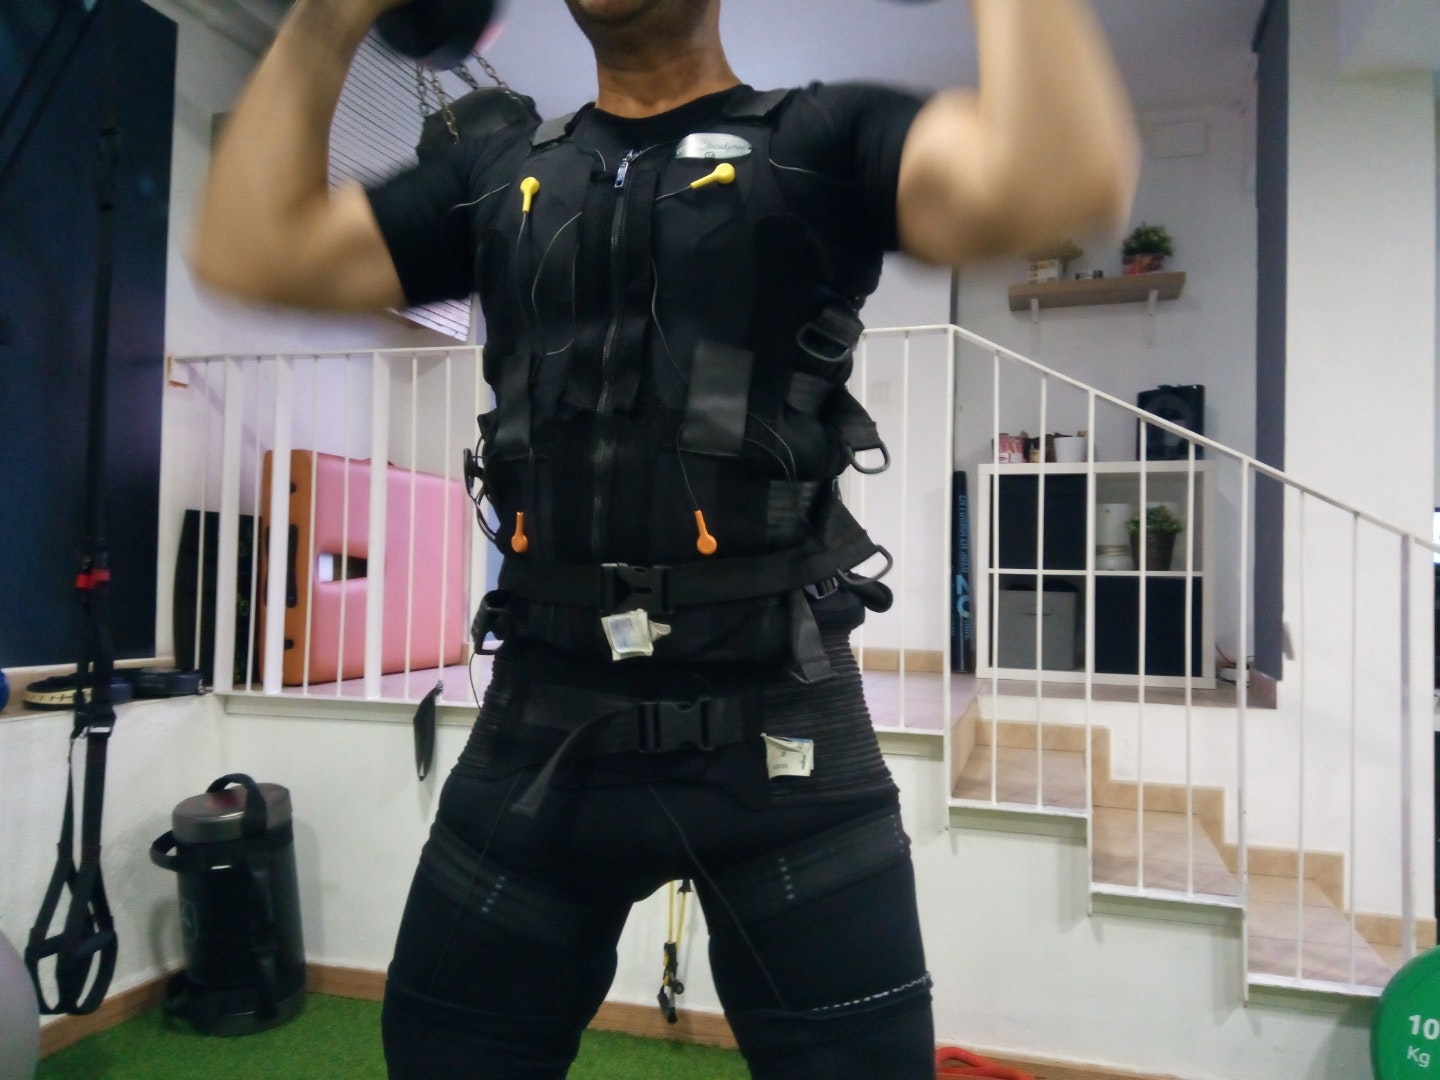 Picture 6 Deals for Well Centro Electroestimulación Barcelona {2}